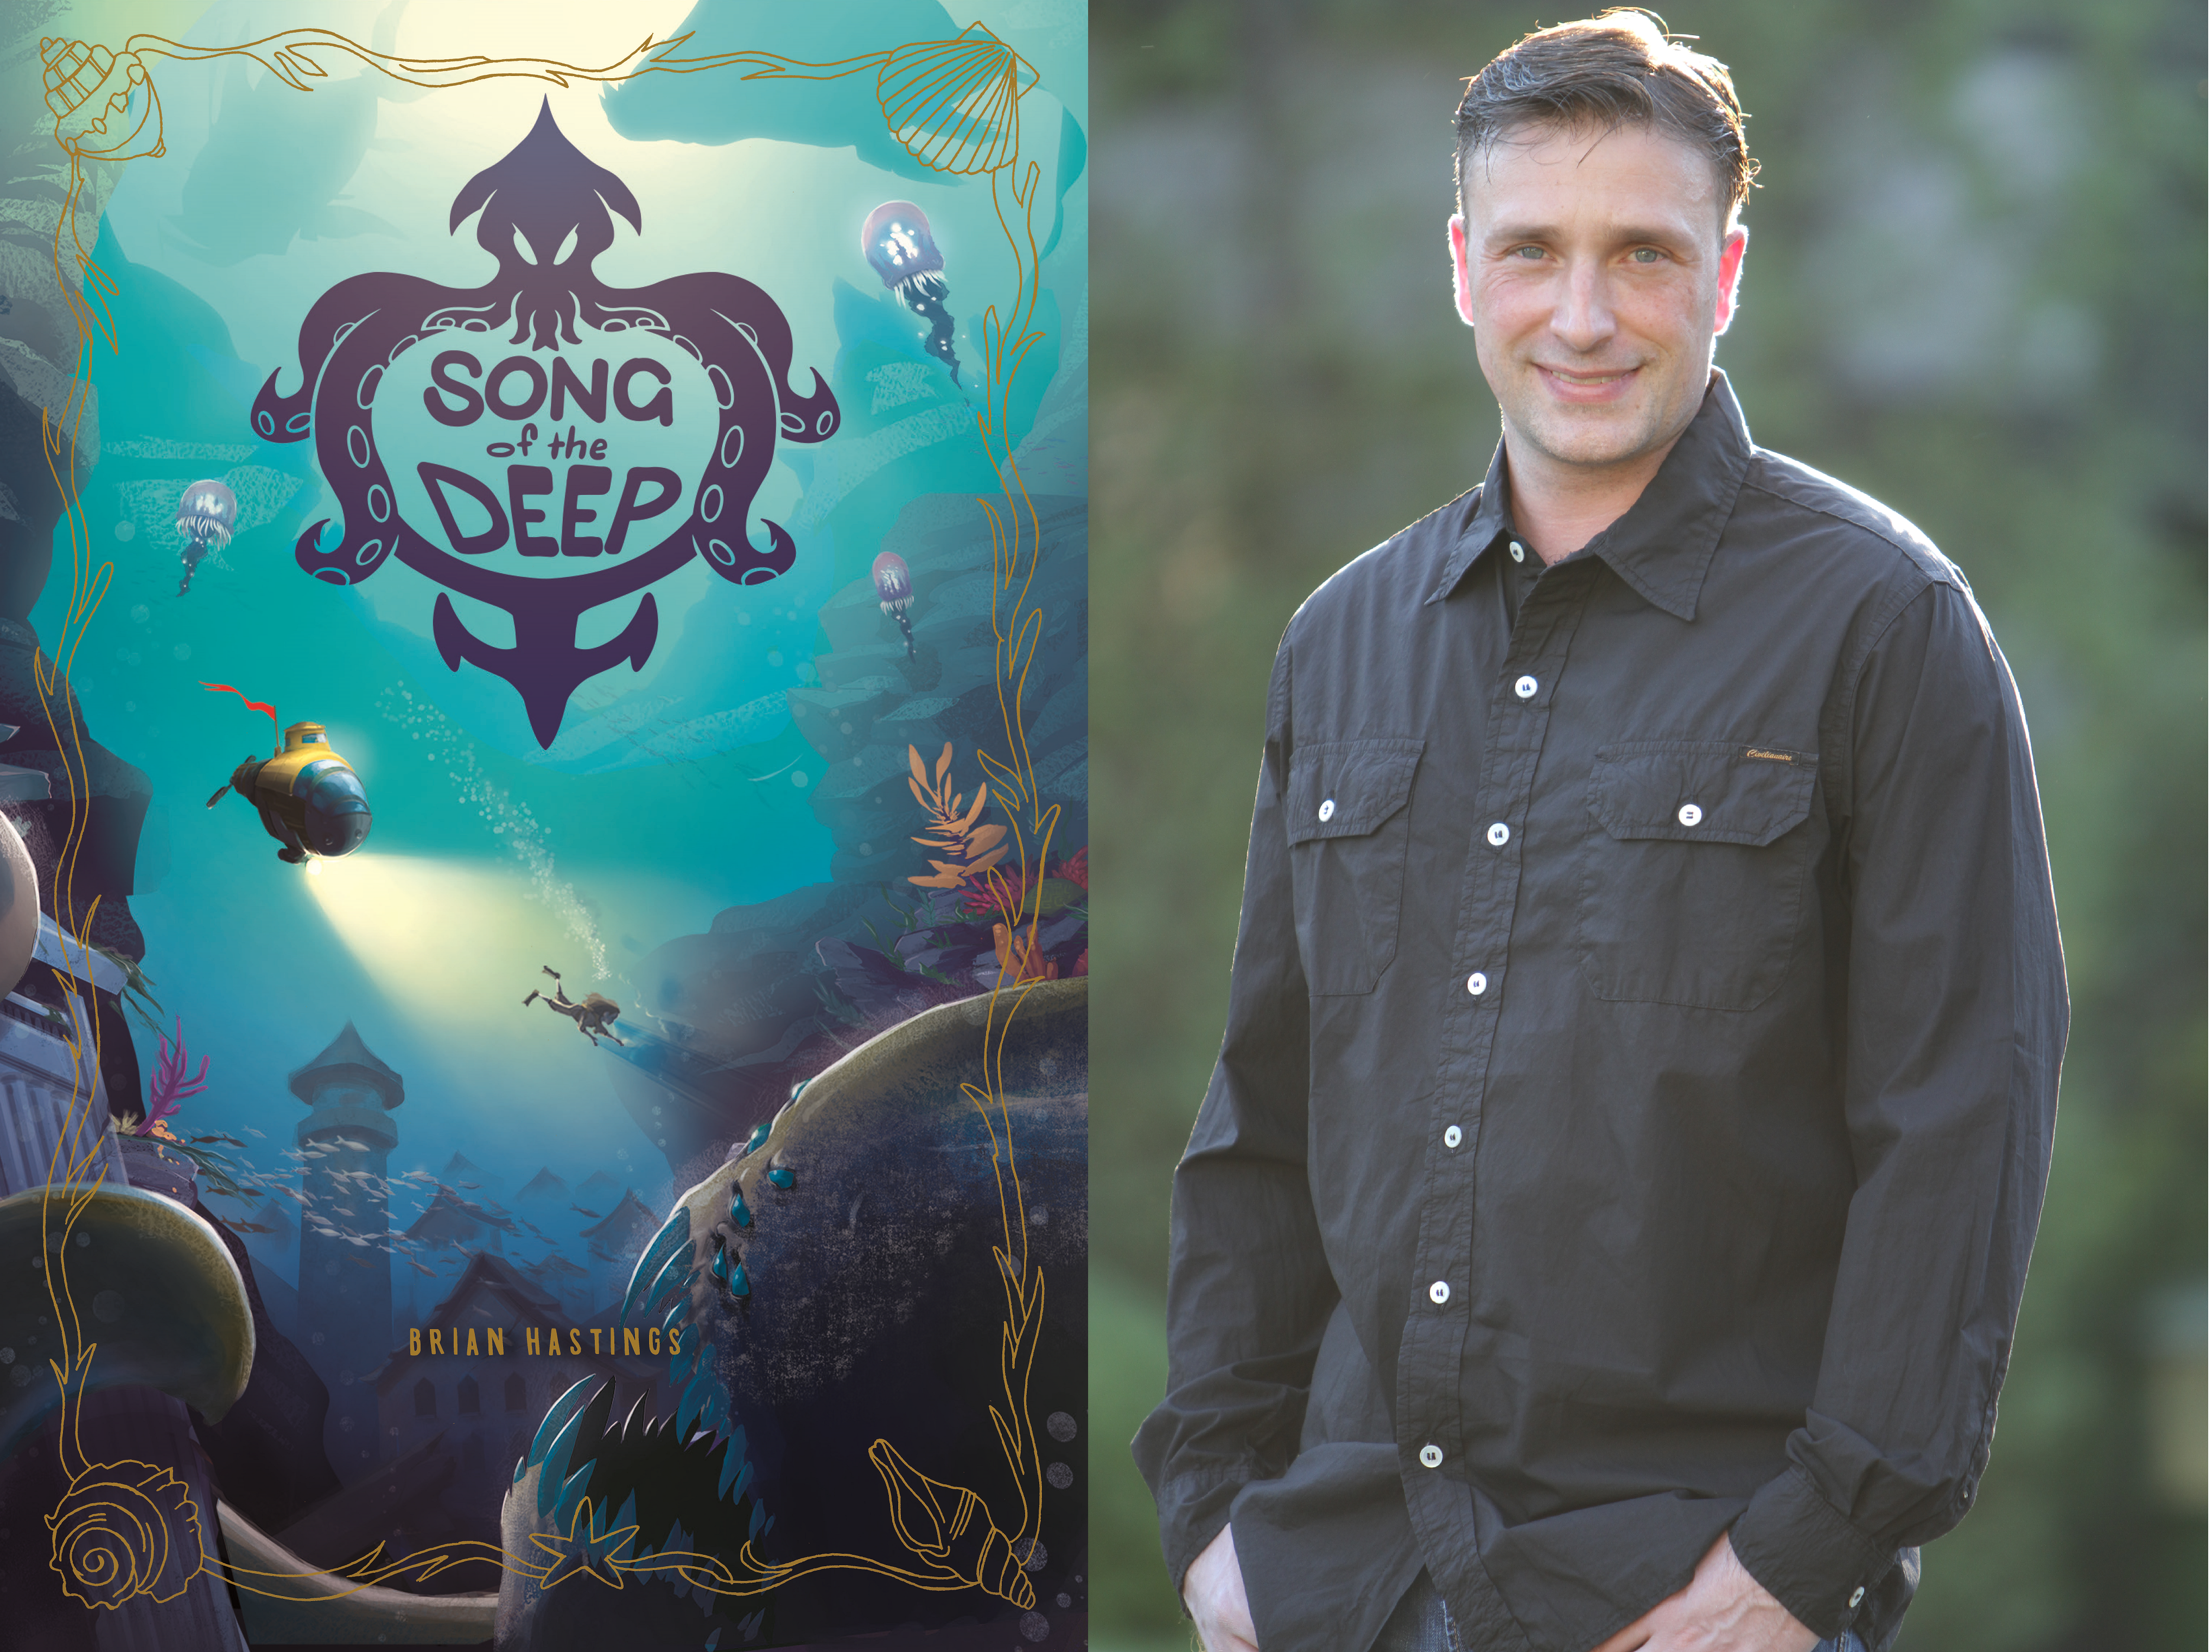 Engineering & Girls In Song Of The Deep